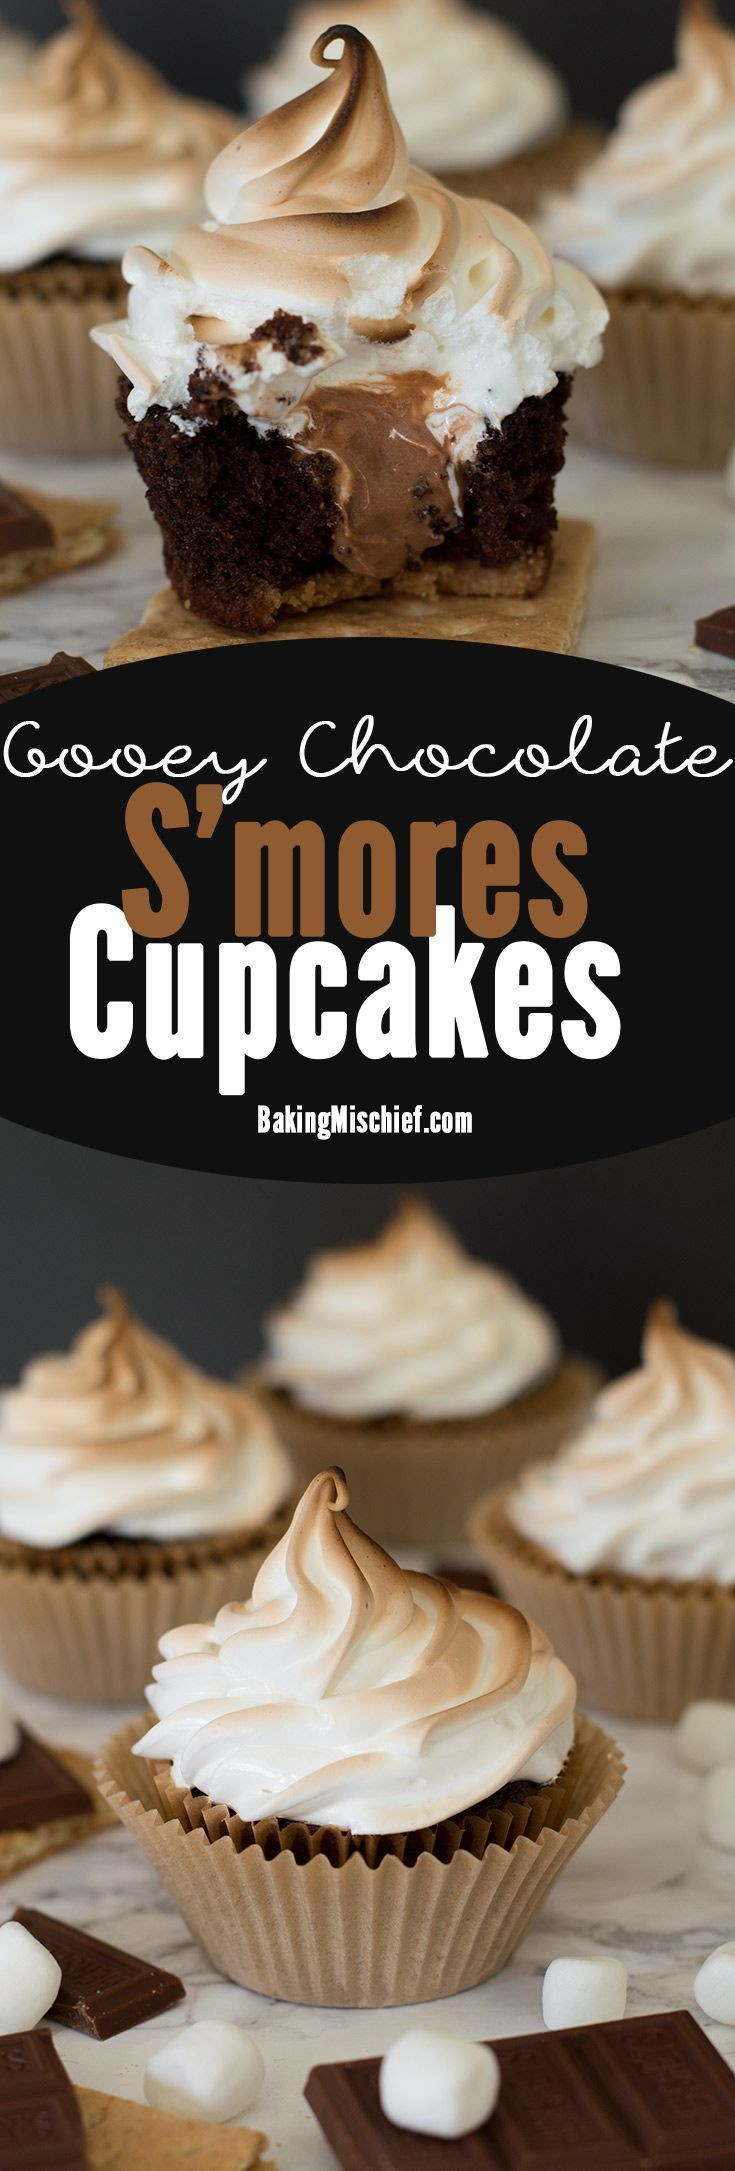 "These are the perfect s'mores cupcakes: a graham cracker base, soft and decadent chocolate cake, gooey Hershey's chocolate buttercream center, and toasted marshmallow frosting. Recipe includes nutritional information. From <a href=""http://BakingMischief.com"" rel=""nofollow"" target=""_blank"">BakingMischief.com</a>"